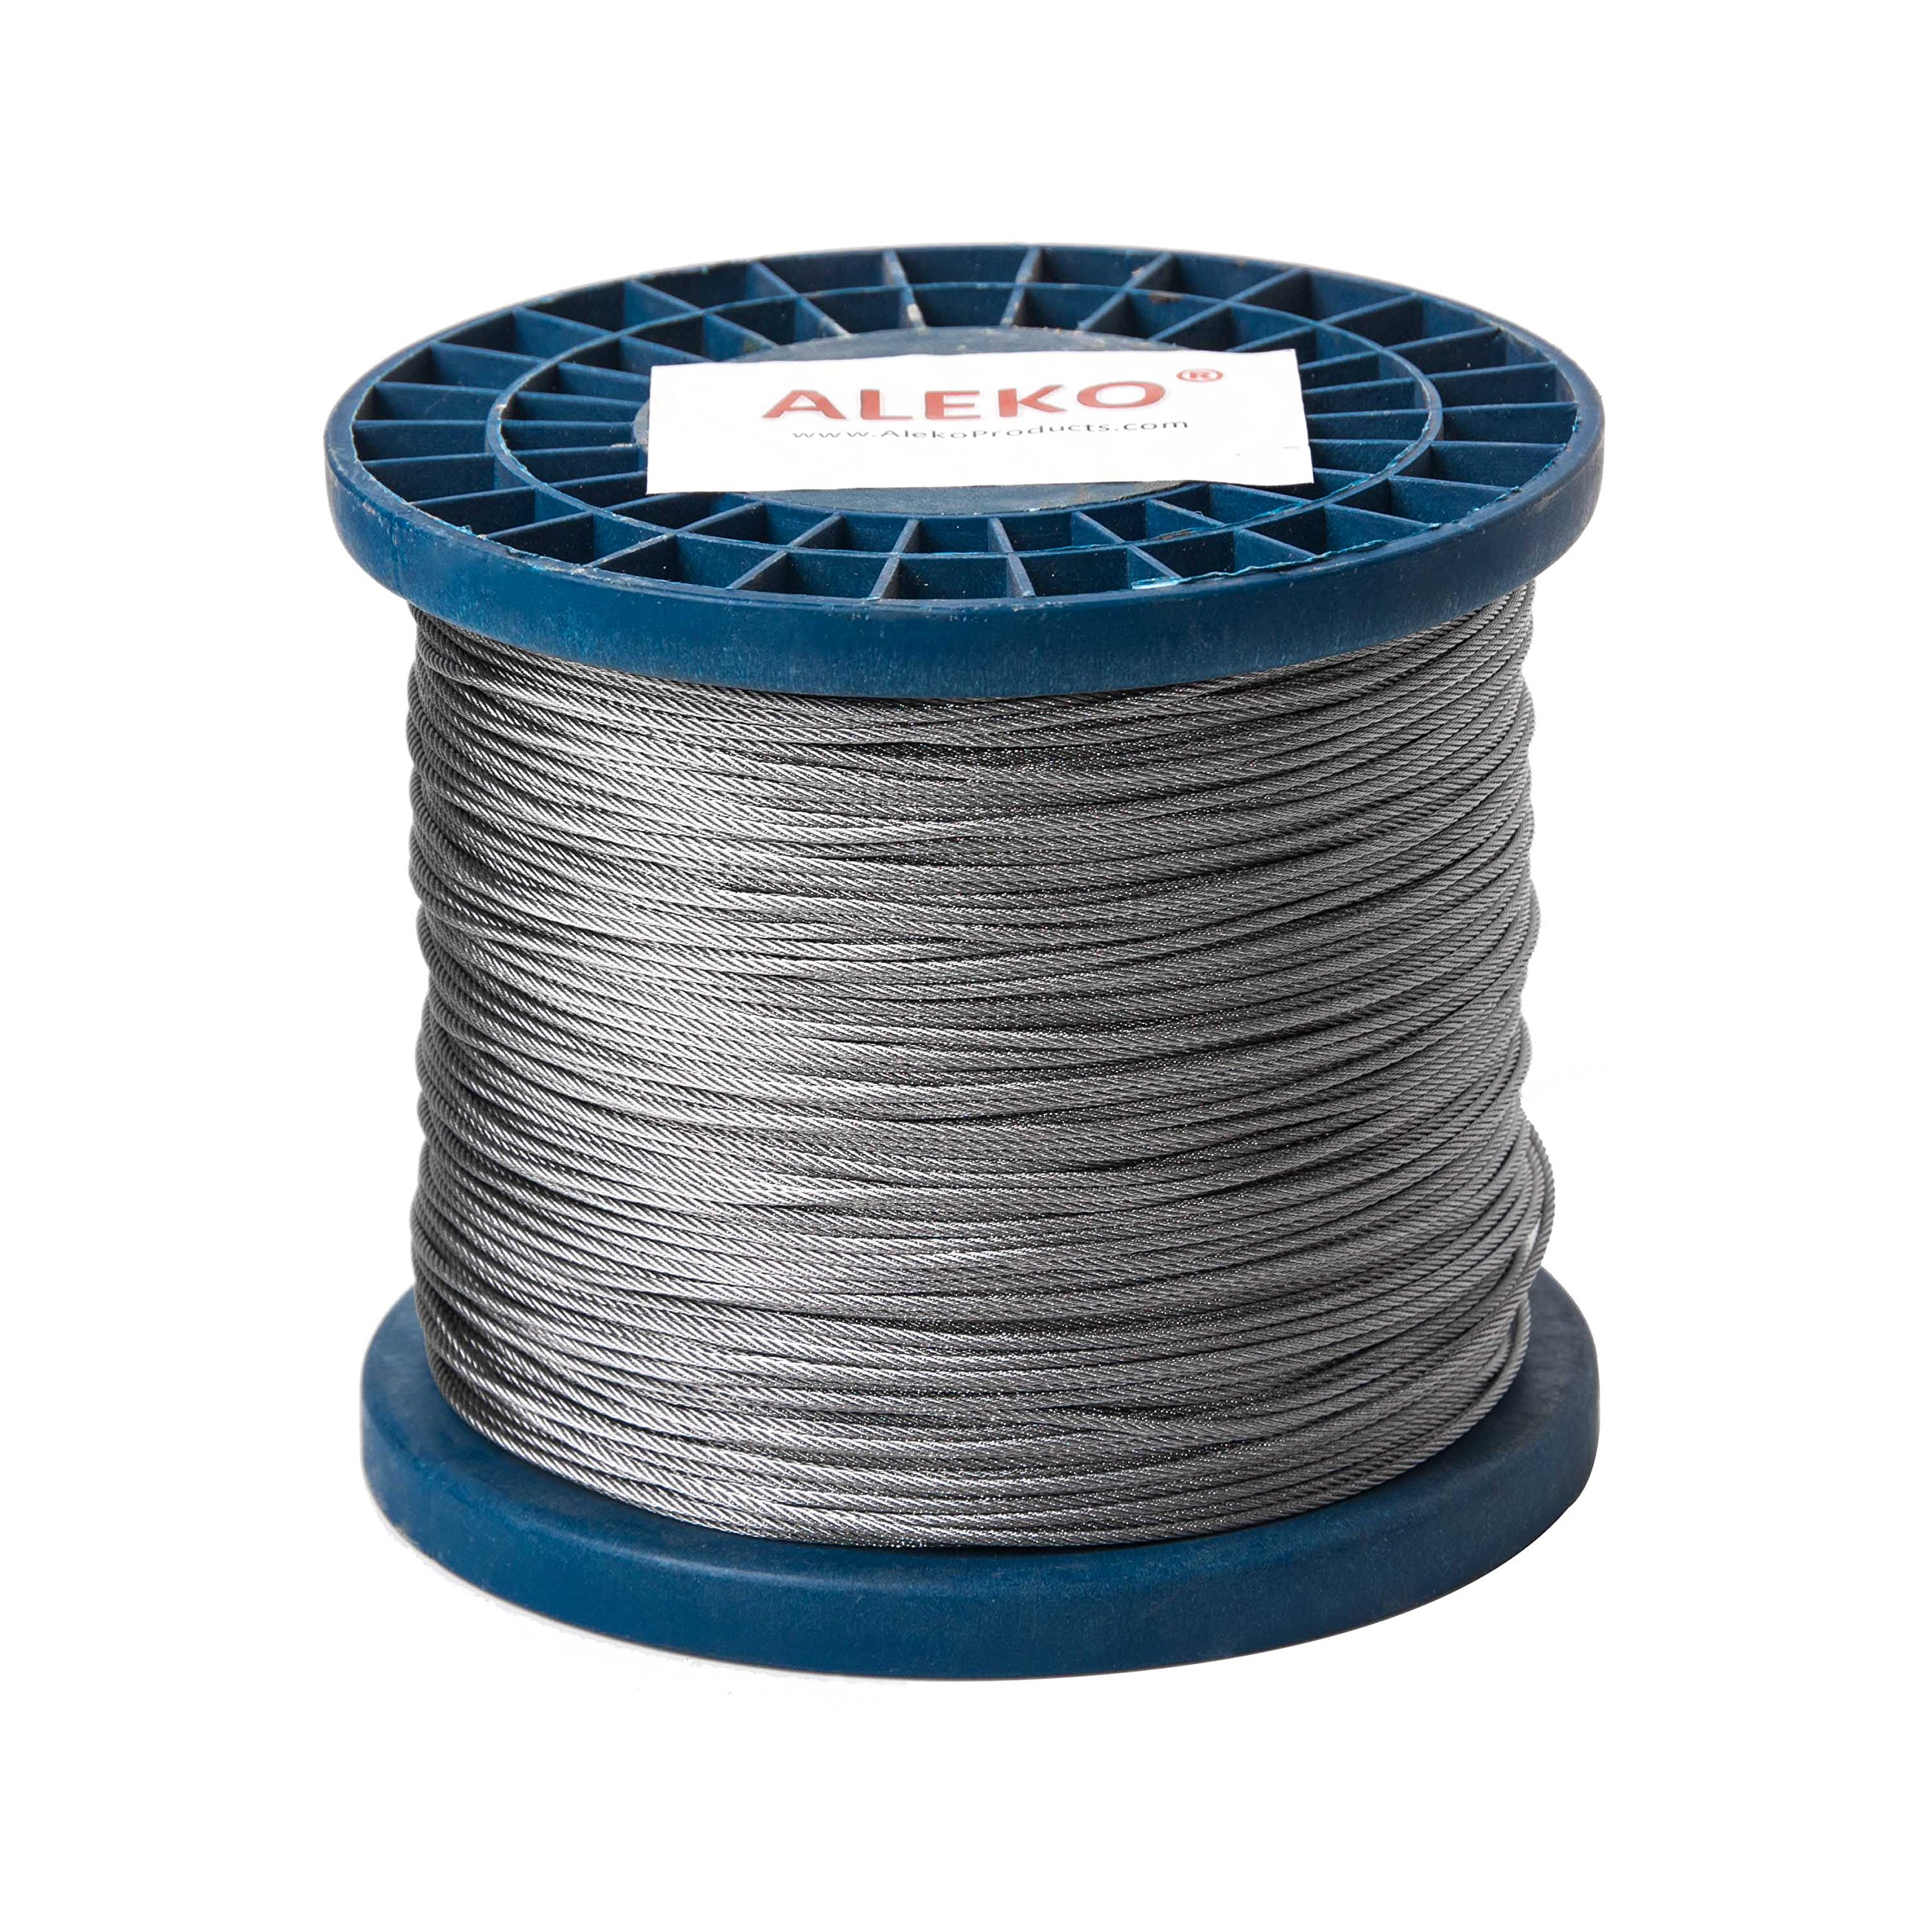 ALEKO WR1/16G304F1000 1/16 Inch Diameter 7 x 7 Strand Galvanized Aircraft Steel Cable Wire Rope 1000 Feet